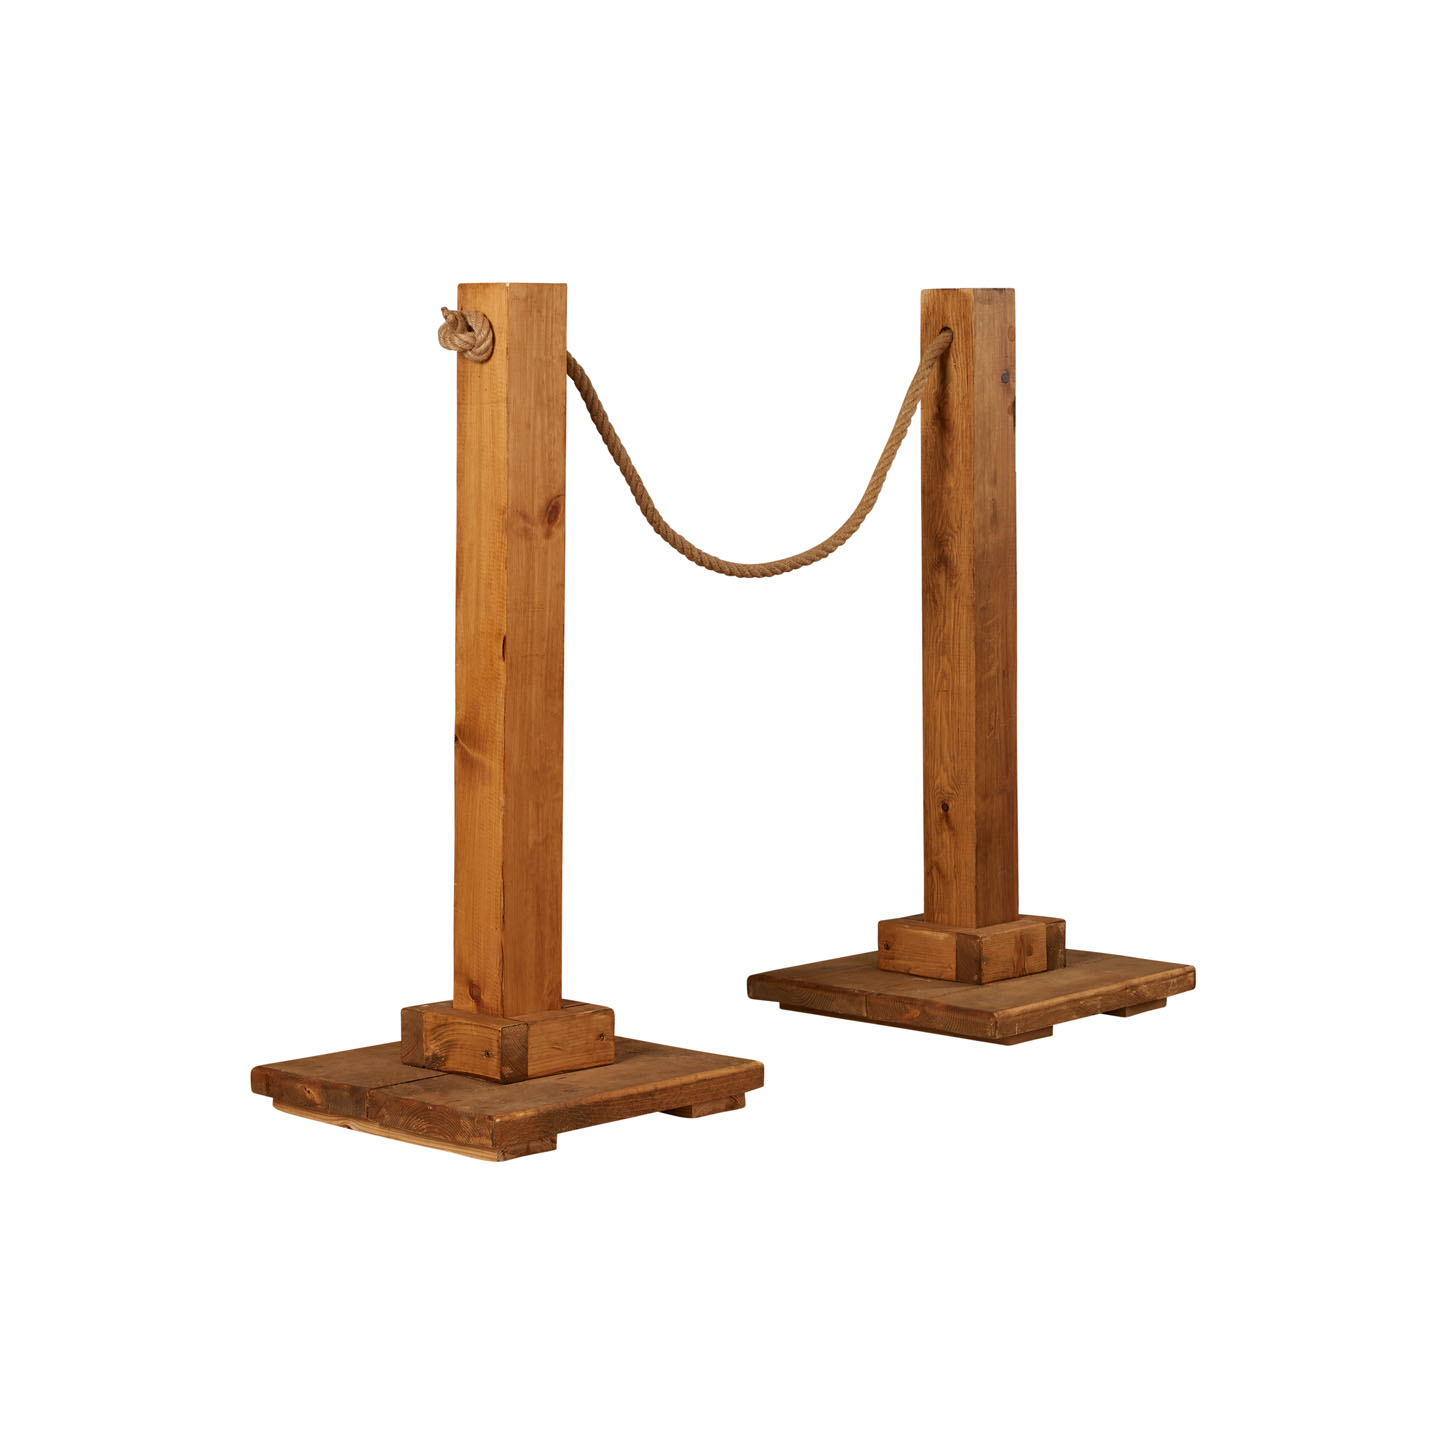 Wooden Post and Rope